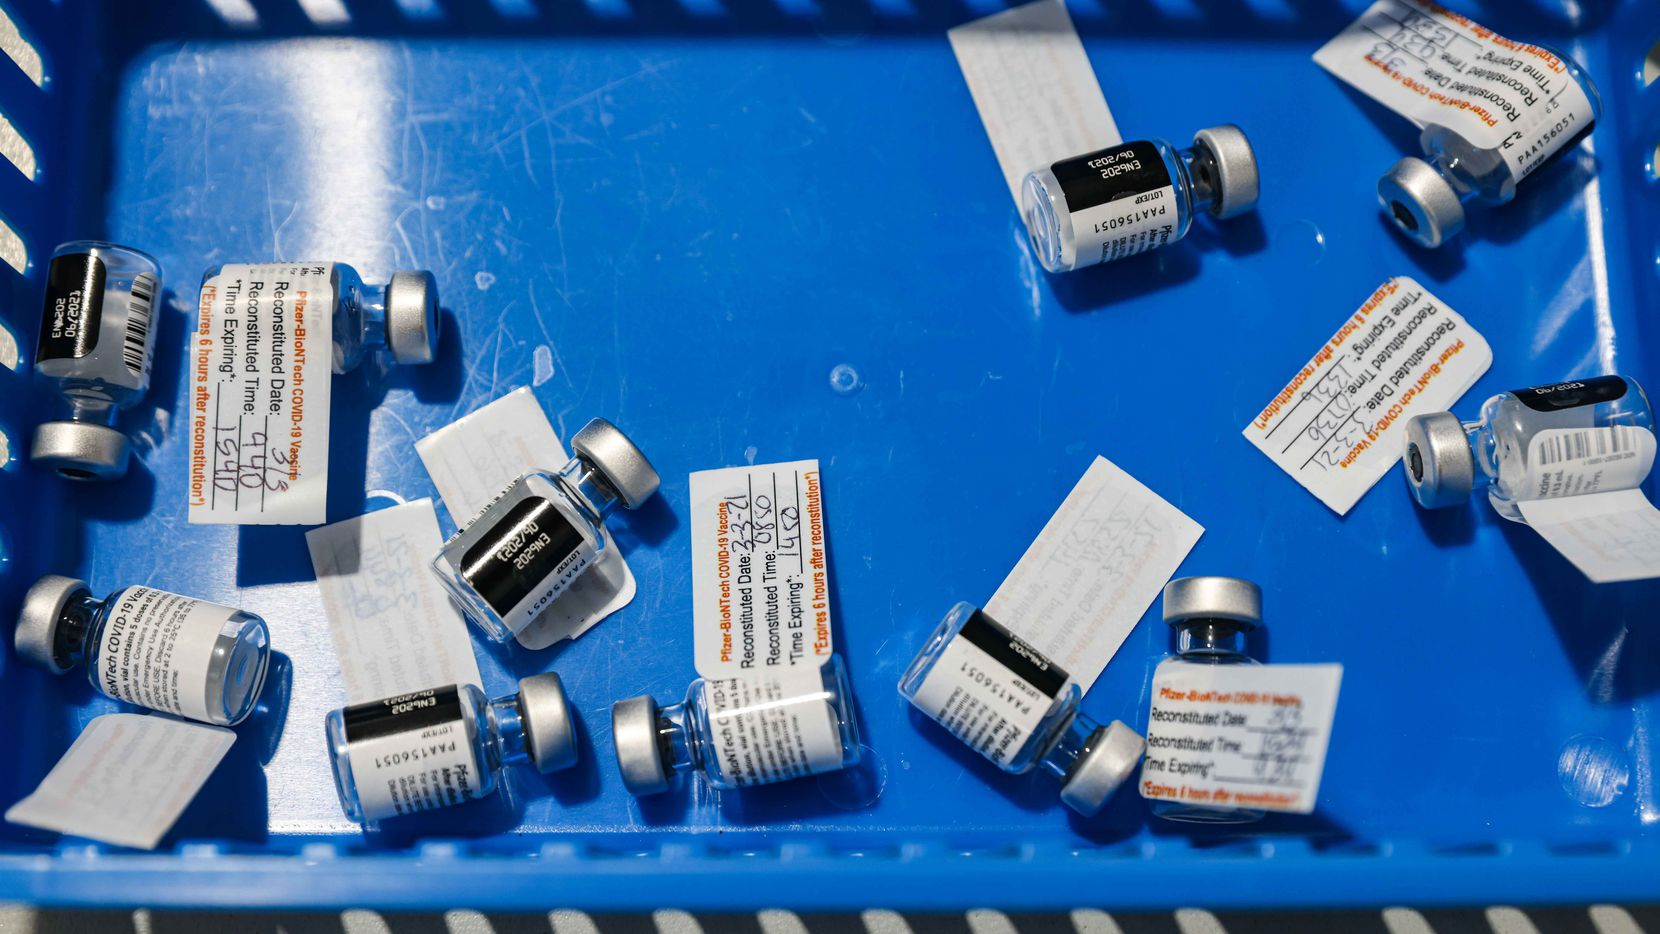 Used Pfizer-BioNTech COVID-19 vaccine vials rest in a blue tray at Ellis Davis Fieldhouse, a Parkland Hospital testing and vaccine location, in Dallas on Wednesday, March 3, 2021.